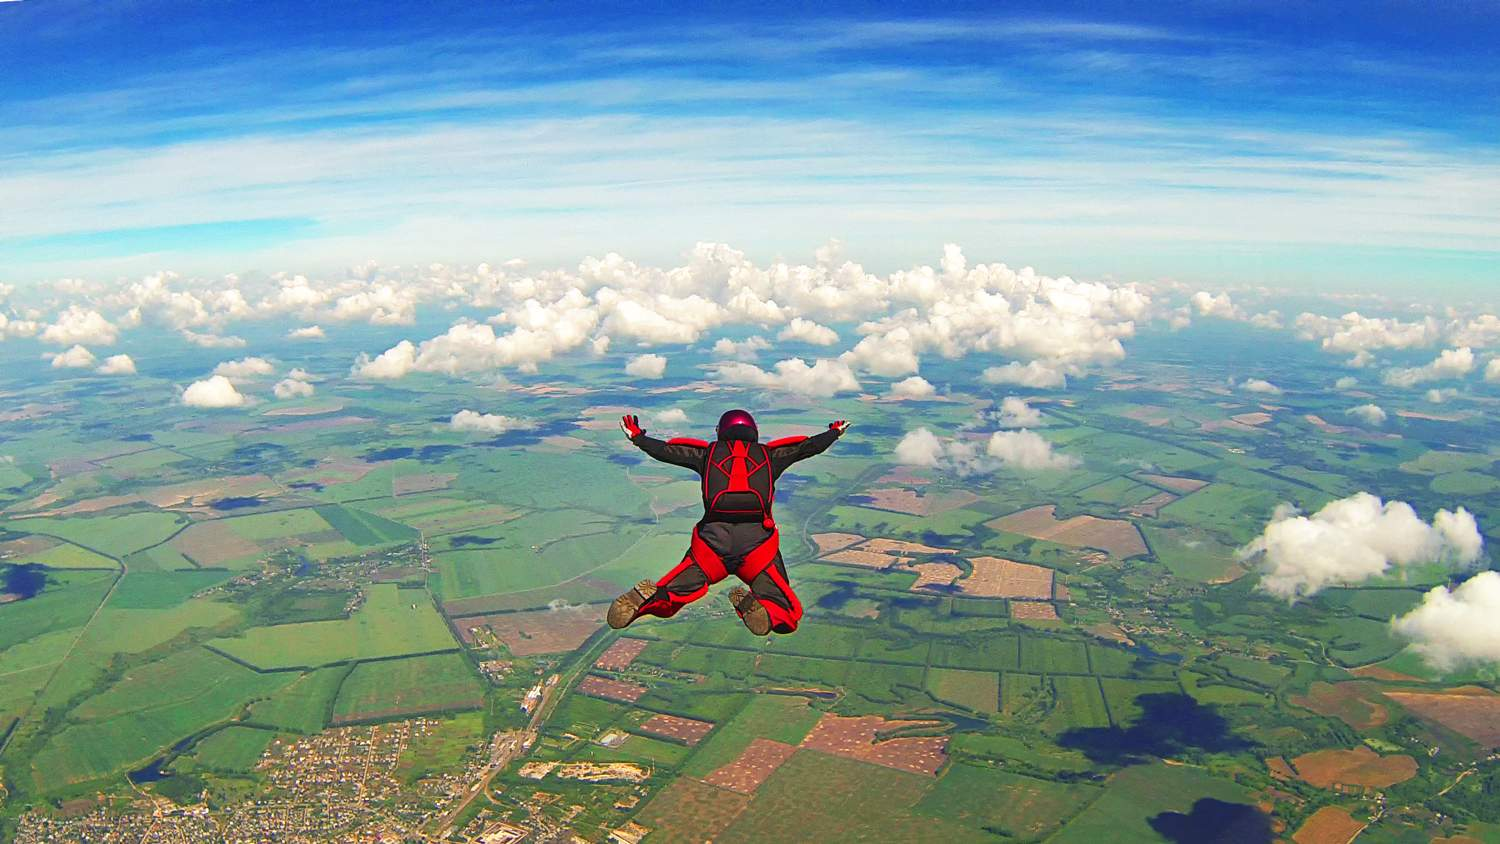 Extreme Tourism in Croatia: Skydiving, Bungee Jumping, and Paragliding